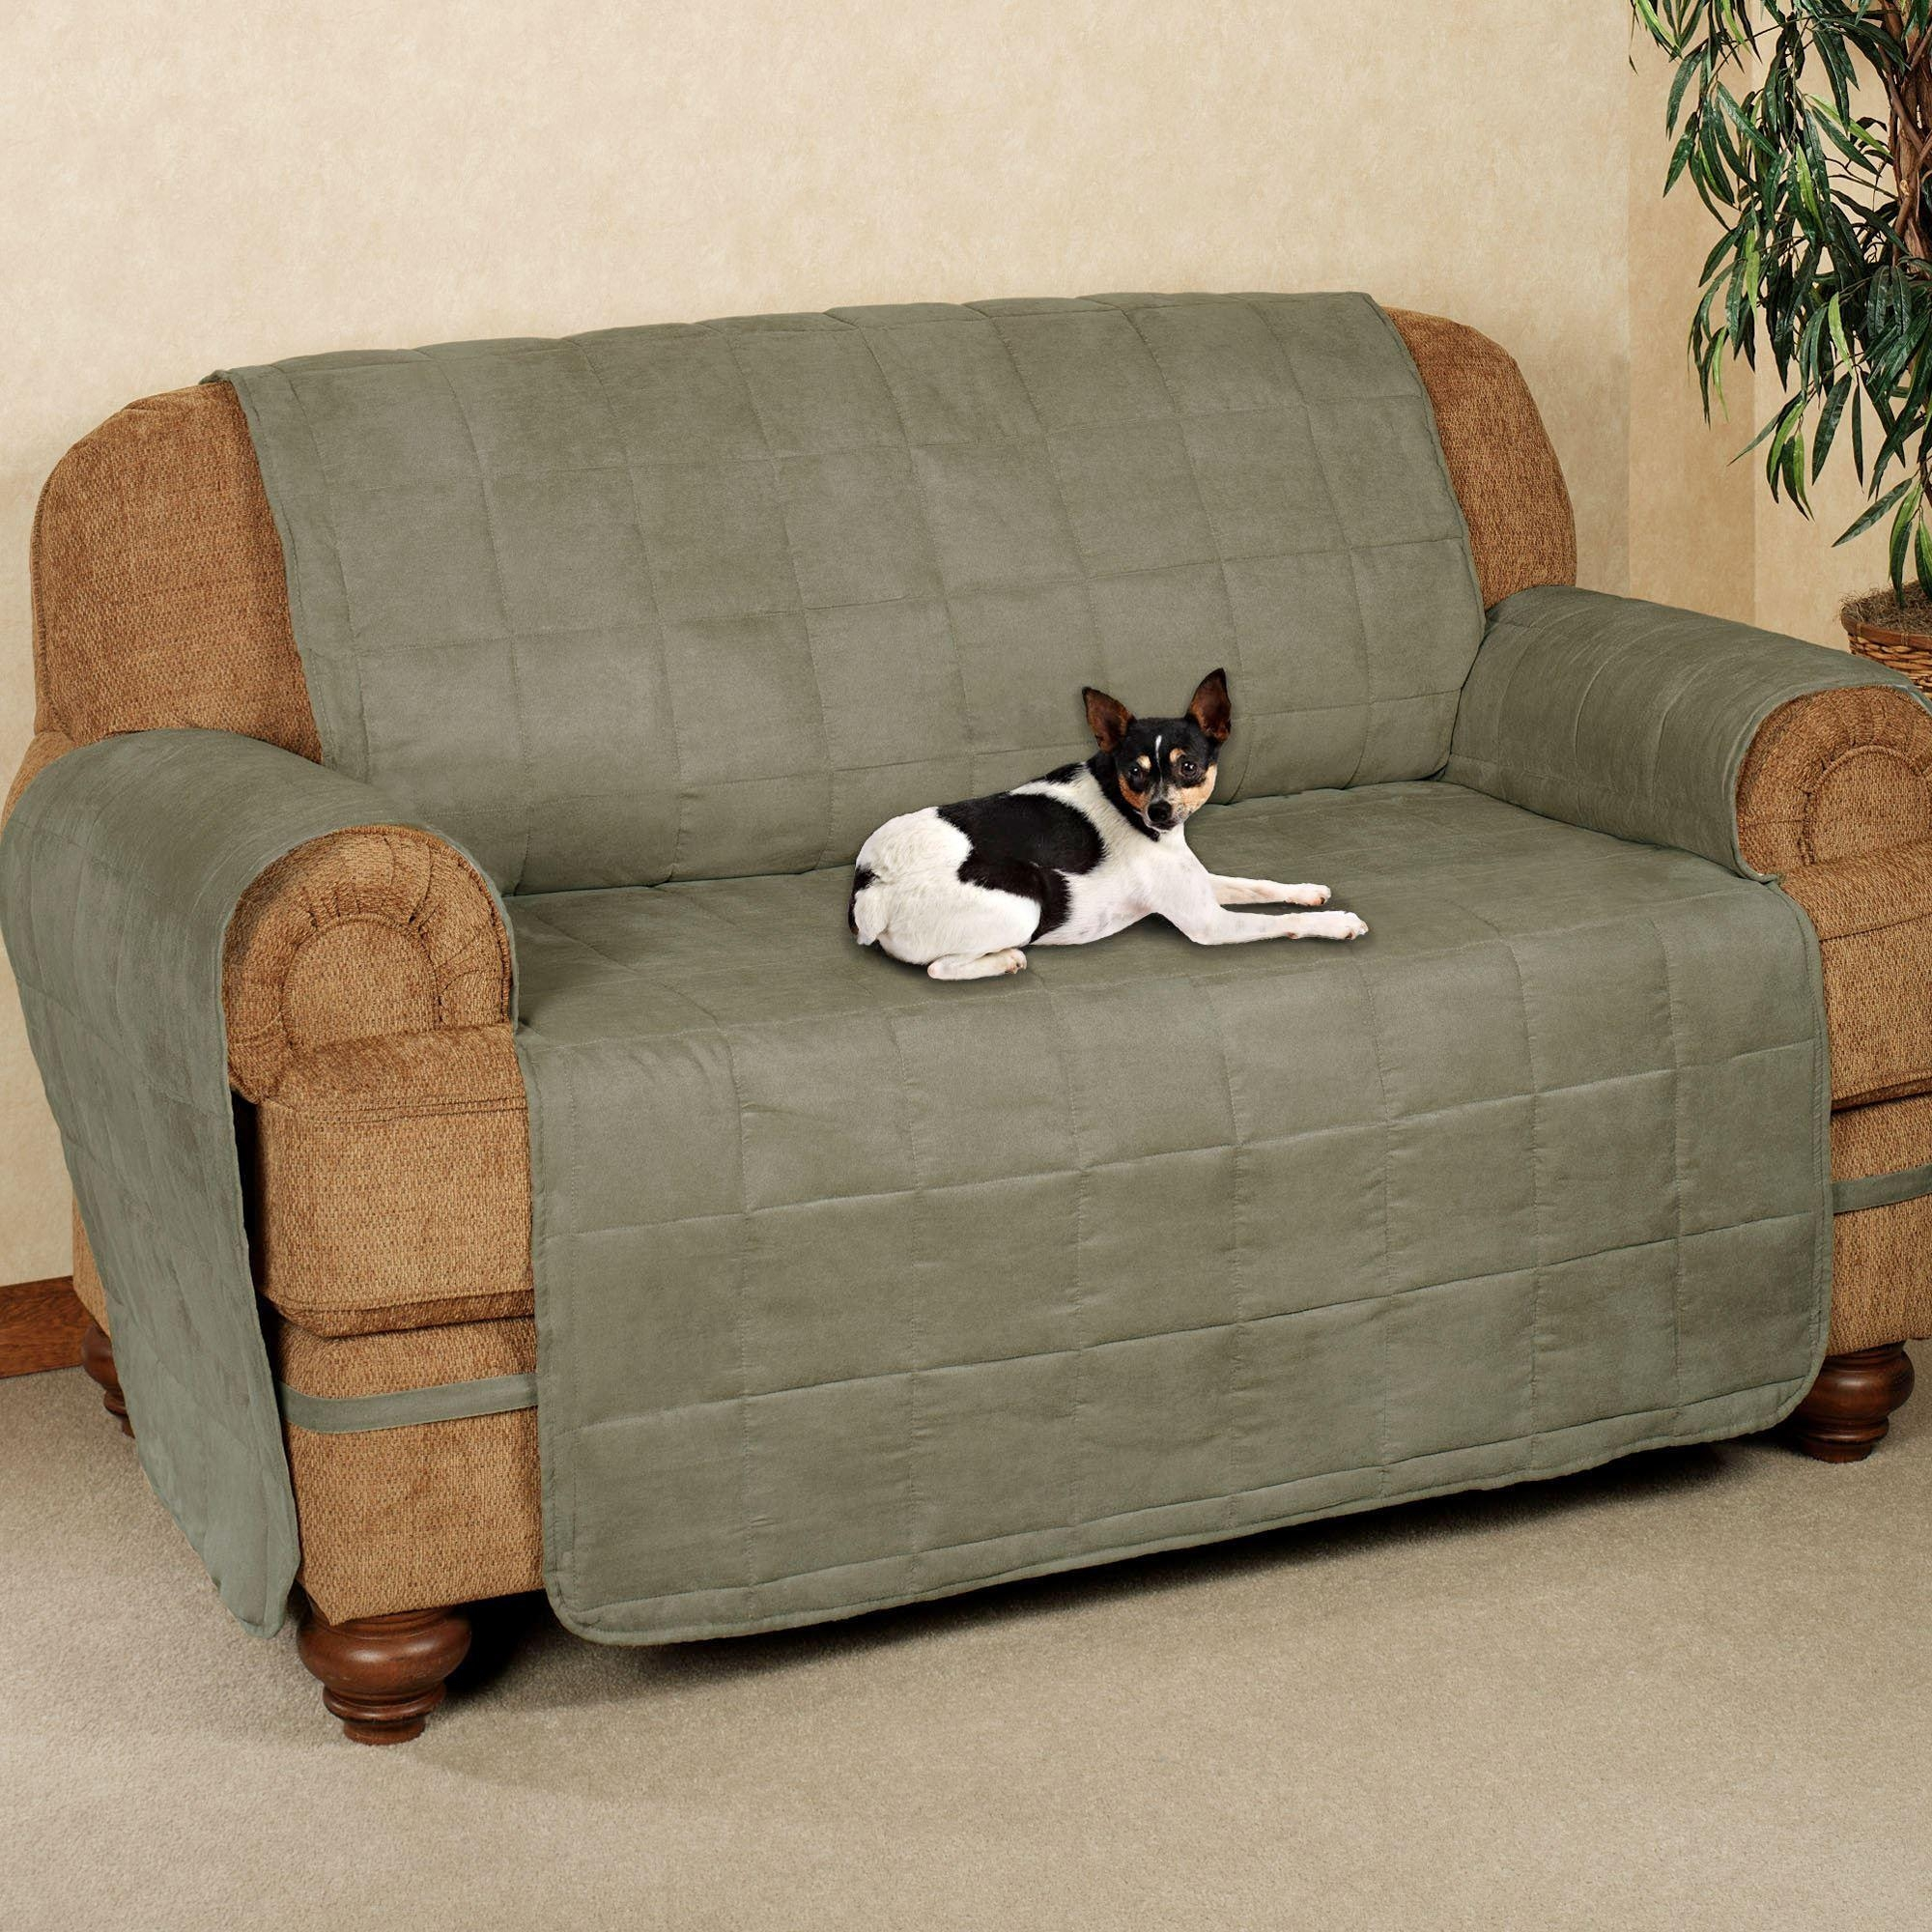 Sofas Center : Tips For Pet Friendly Home Hgtv Cat Proof Sofa With Regard To Cat Proof Sofas (View 4 of 20)